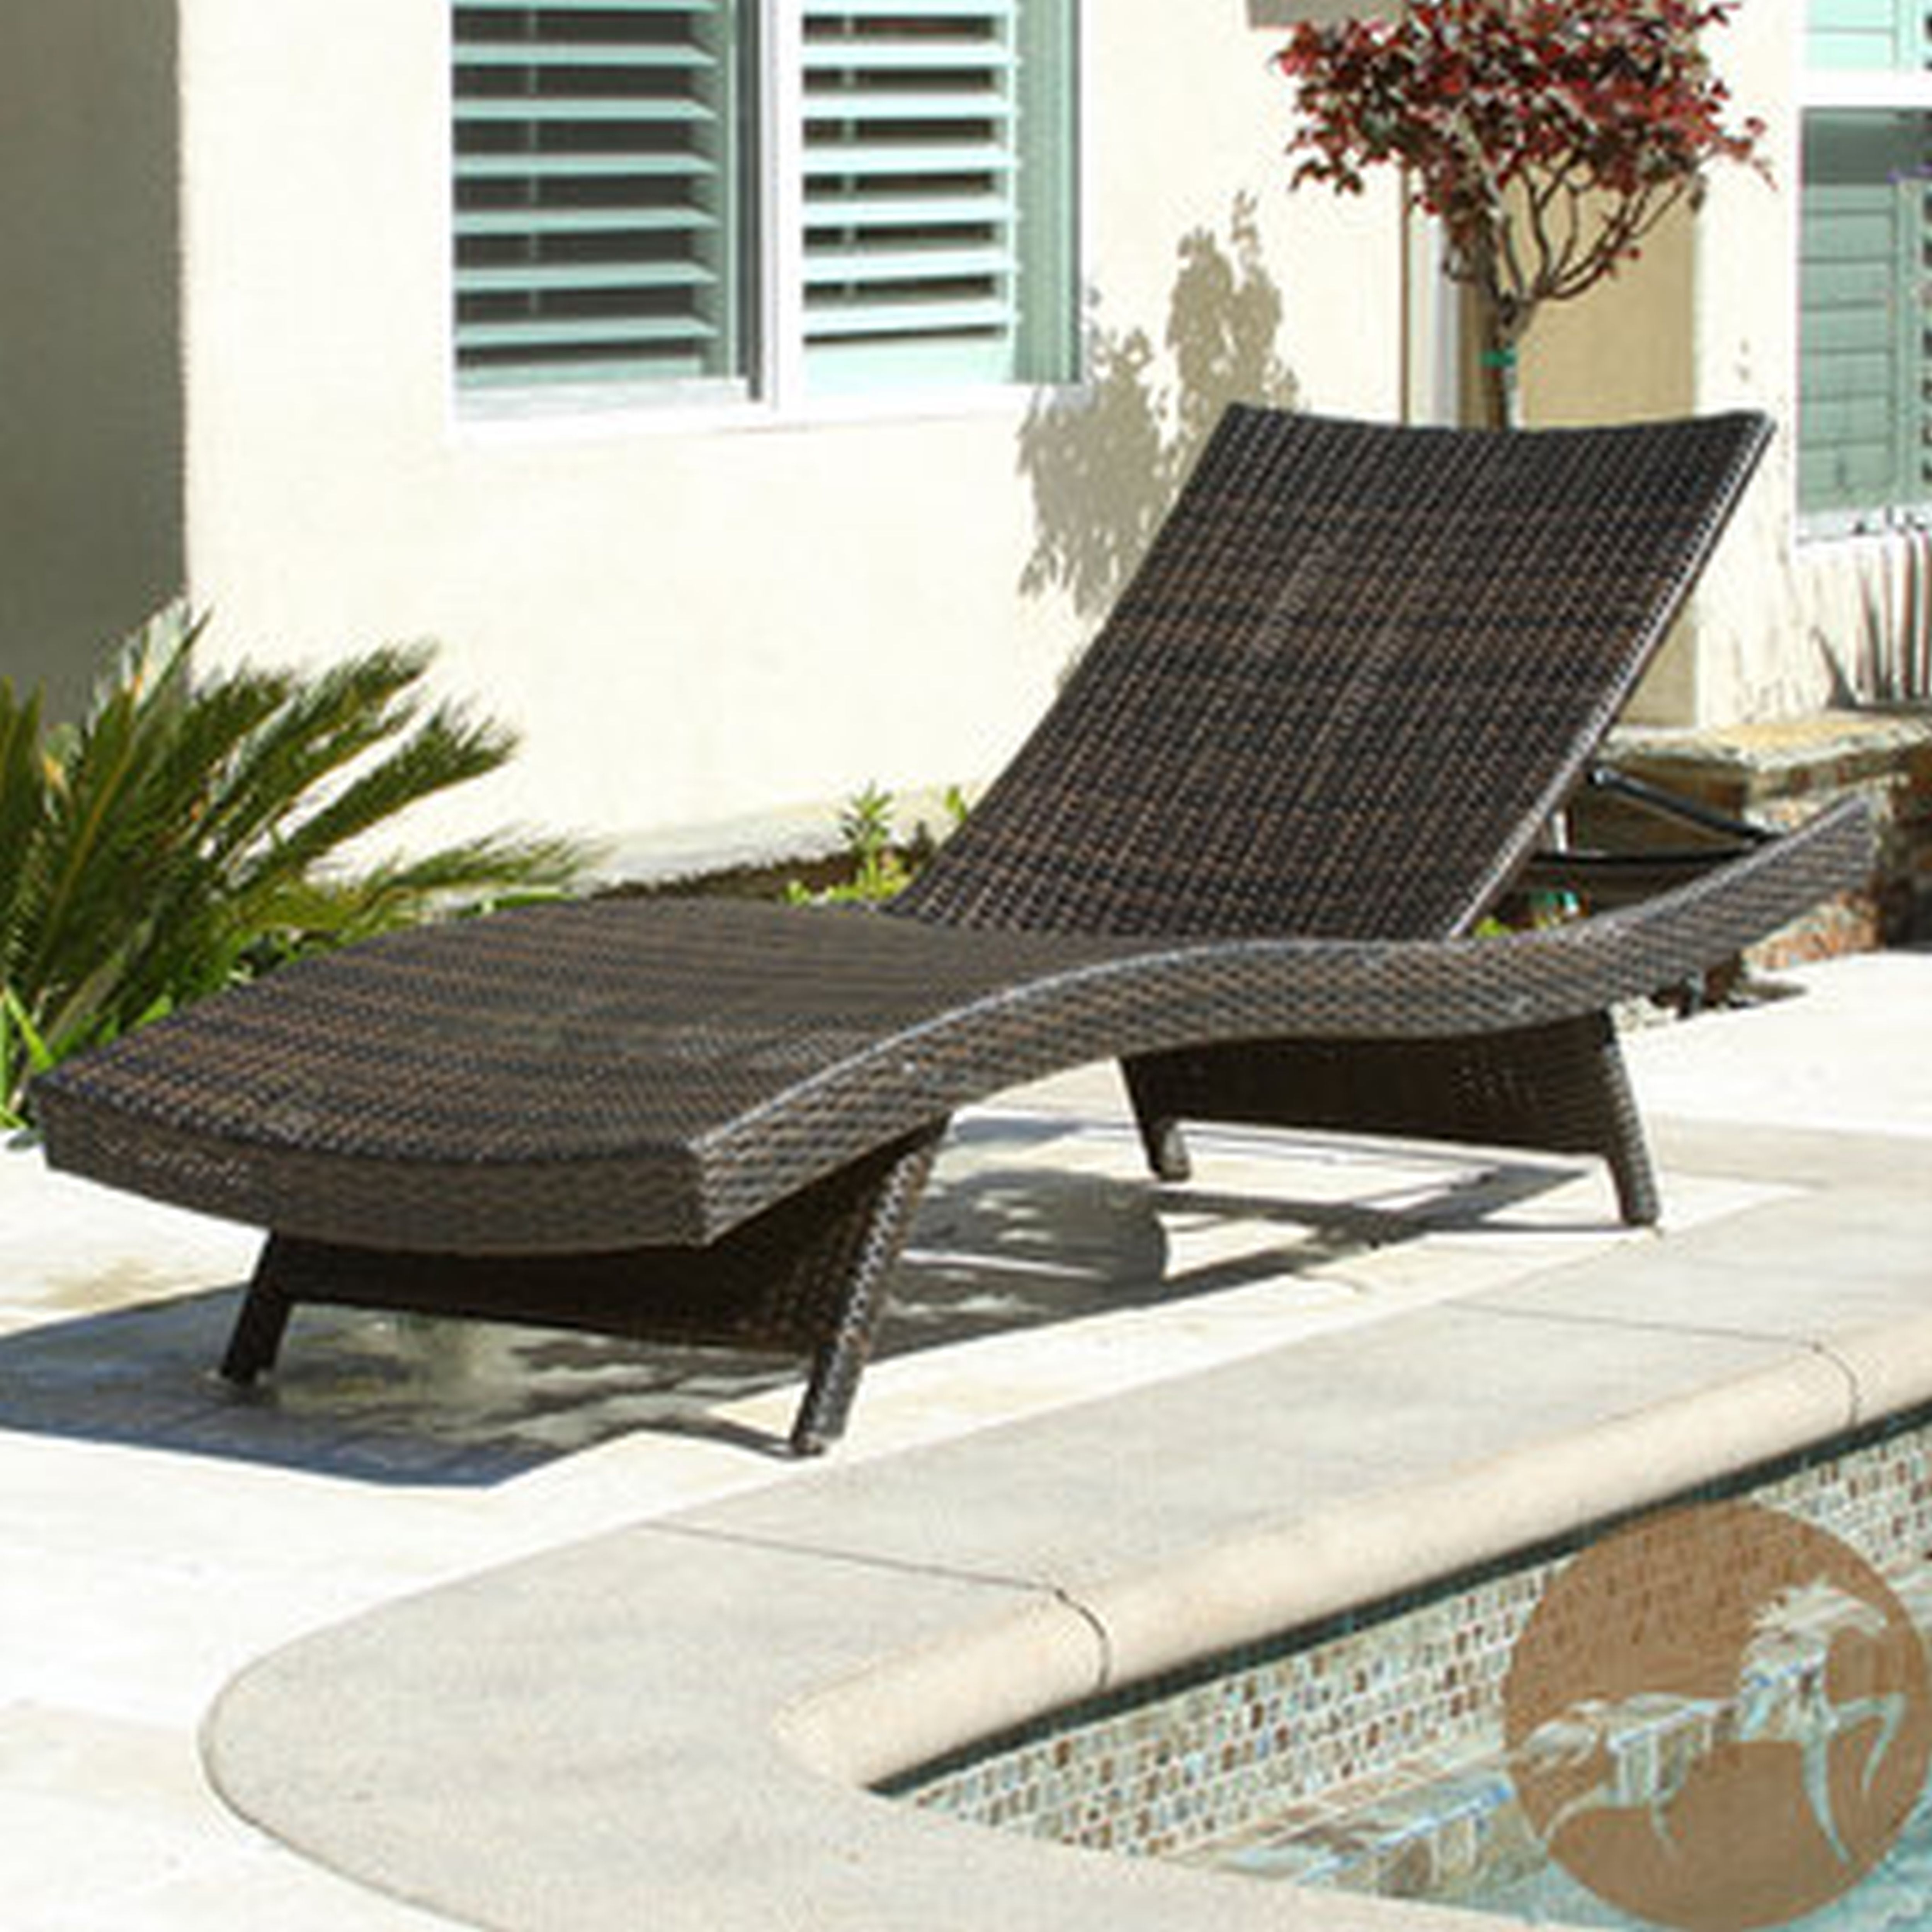 Plastic Chaise Lounge Chairs For Outdoors With Trendy Convertible Chair : Cushions Rattan Chair Cushions High Back Patio (View 4 of 15)